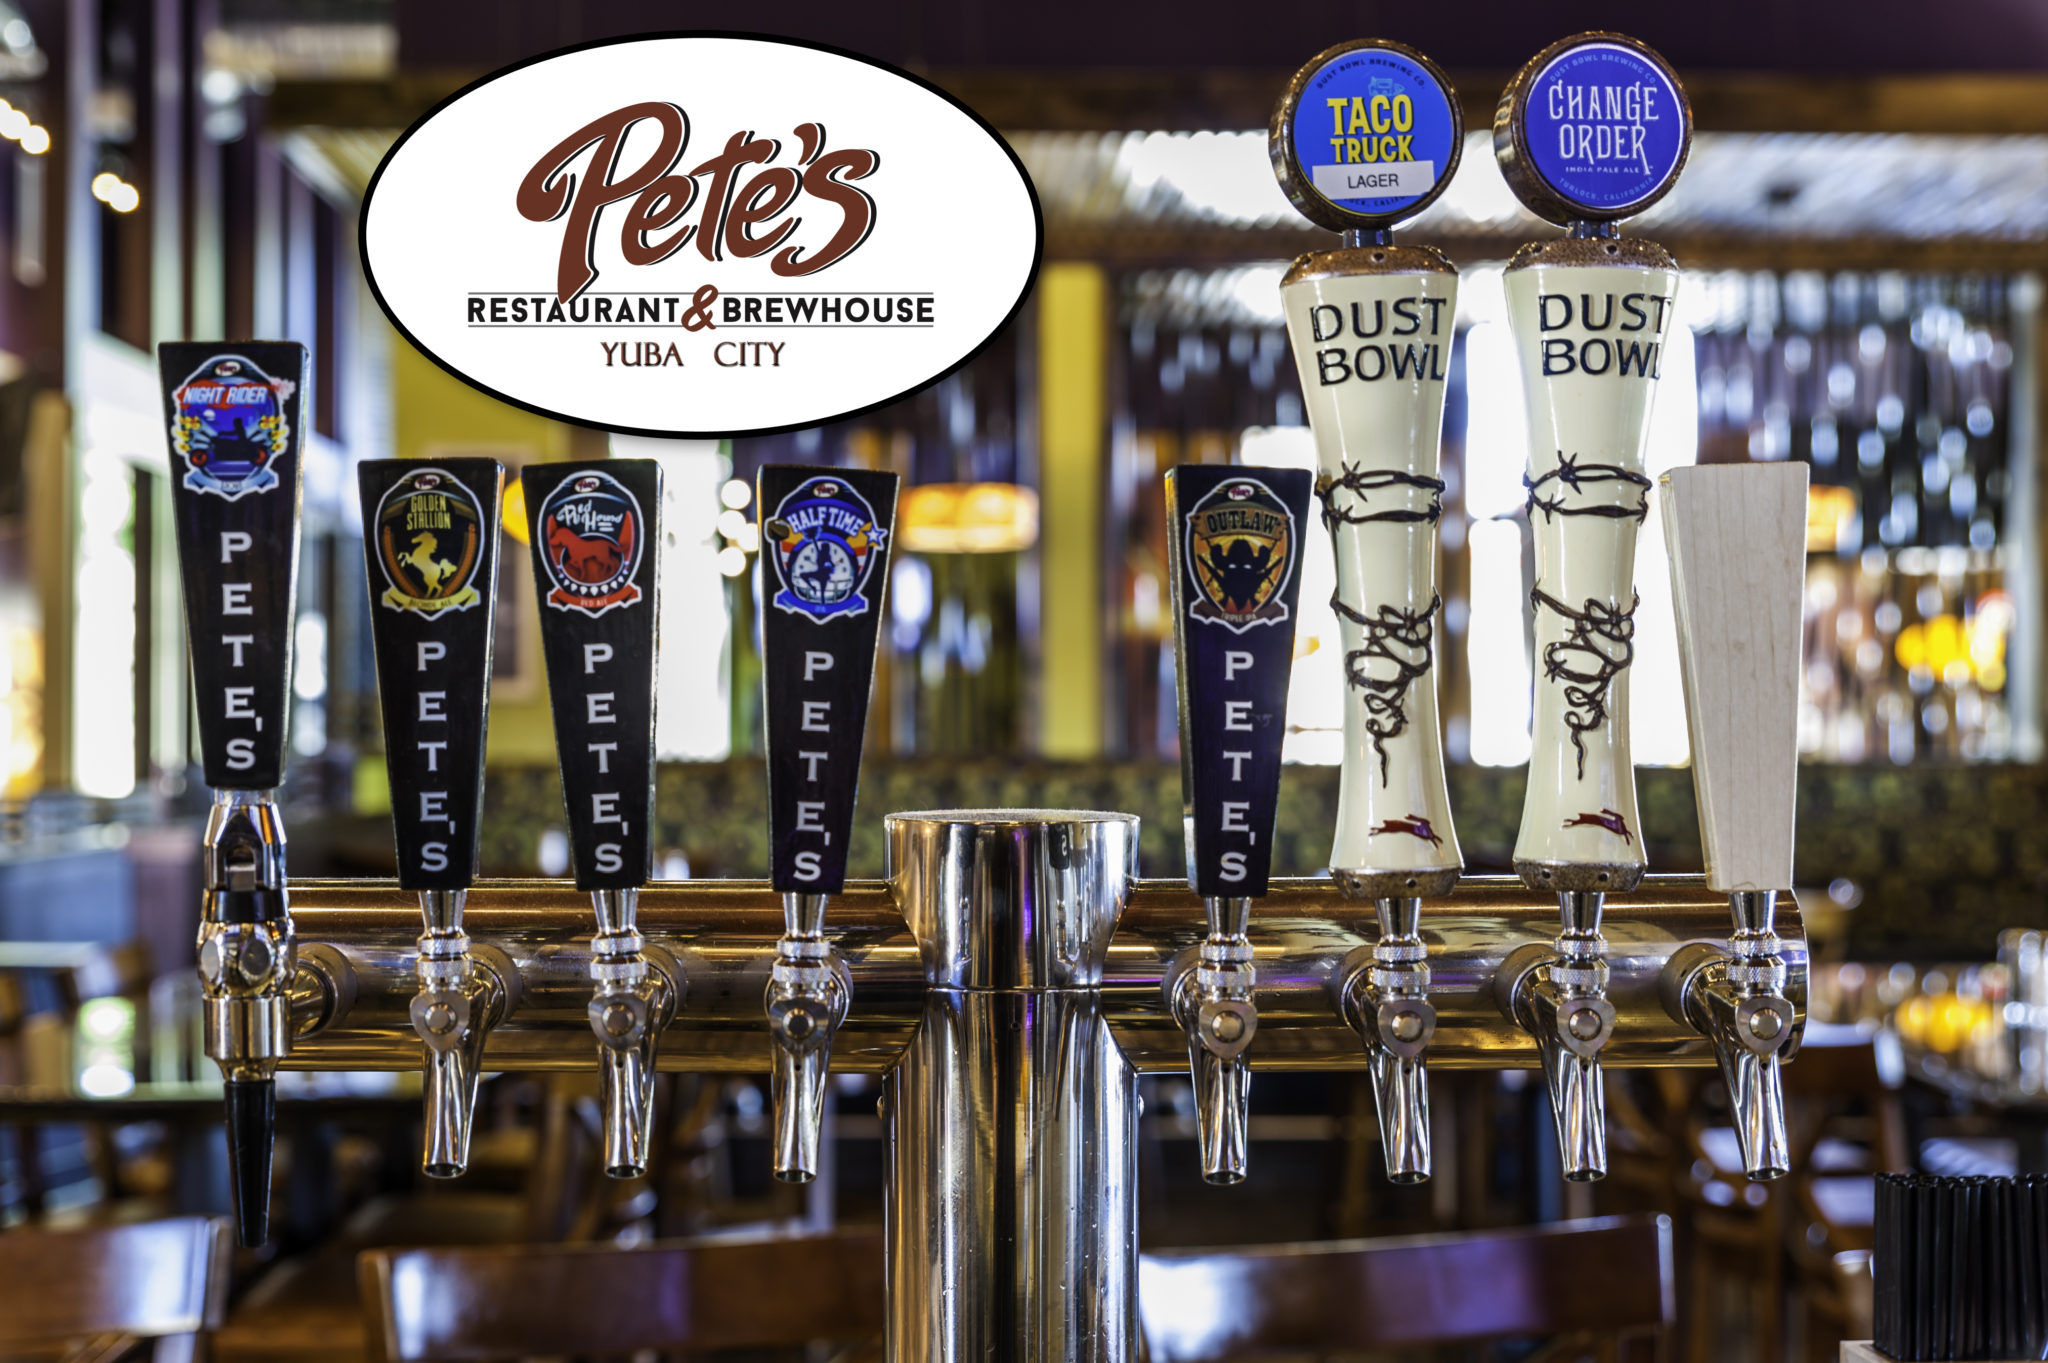 Find your next favorite beer at Yuba City Pete's!